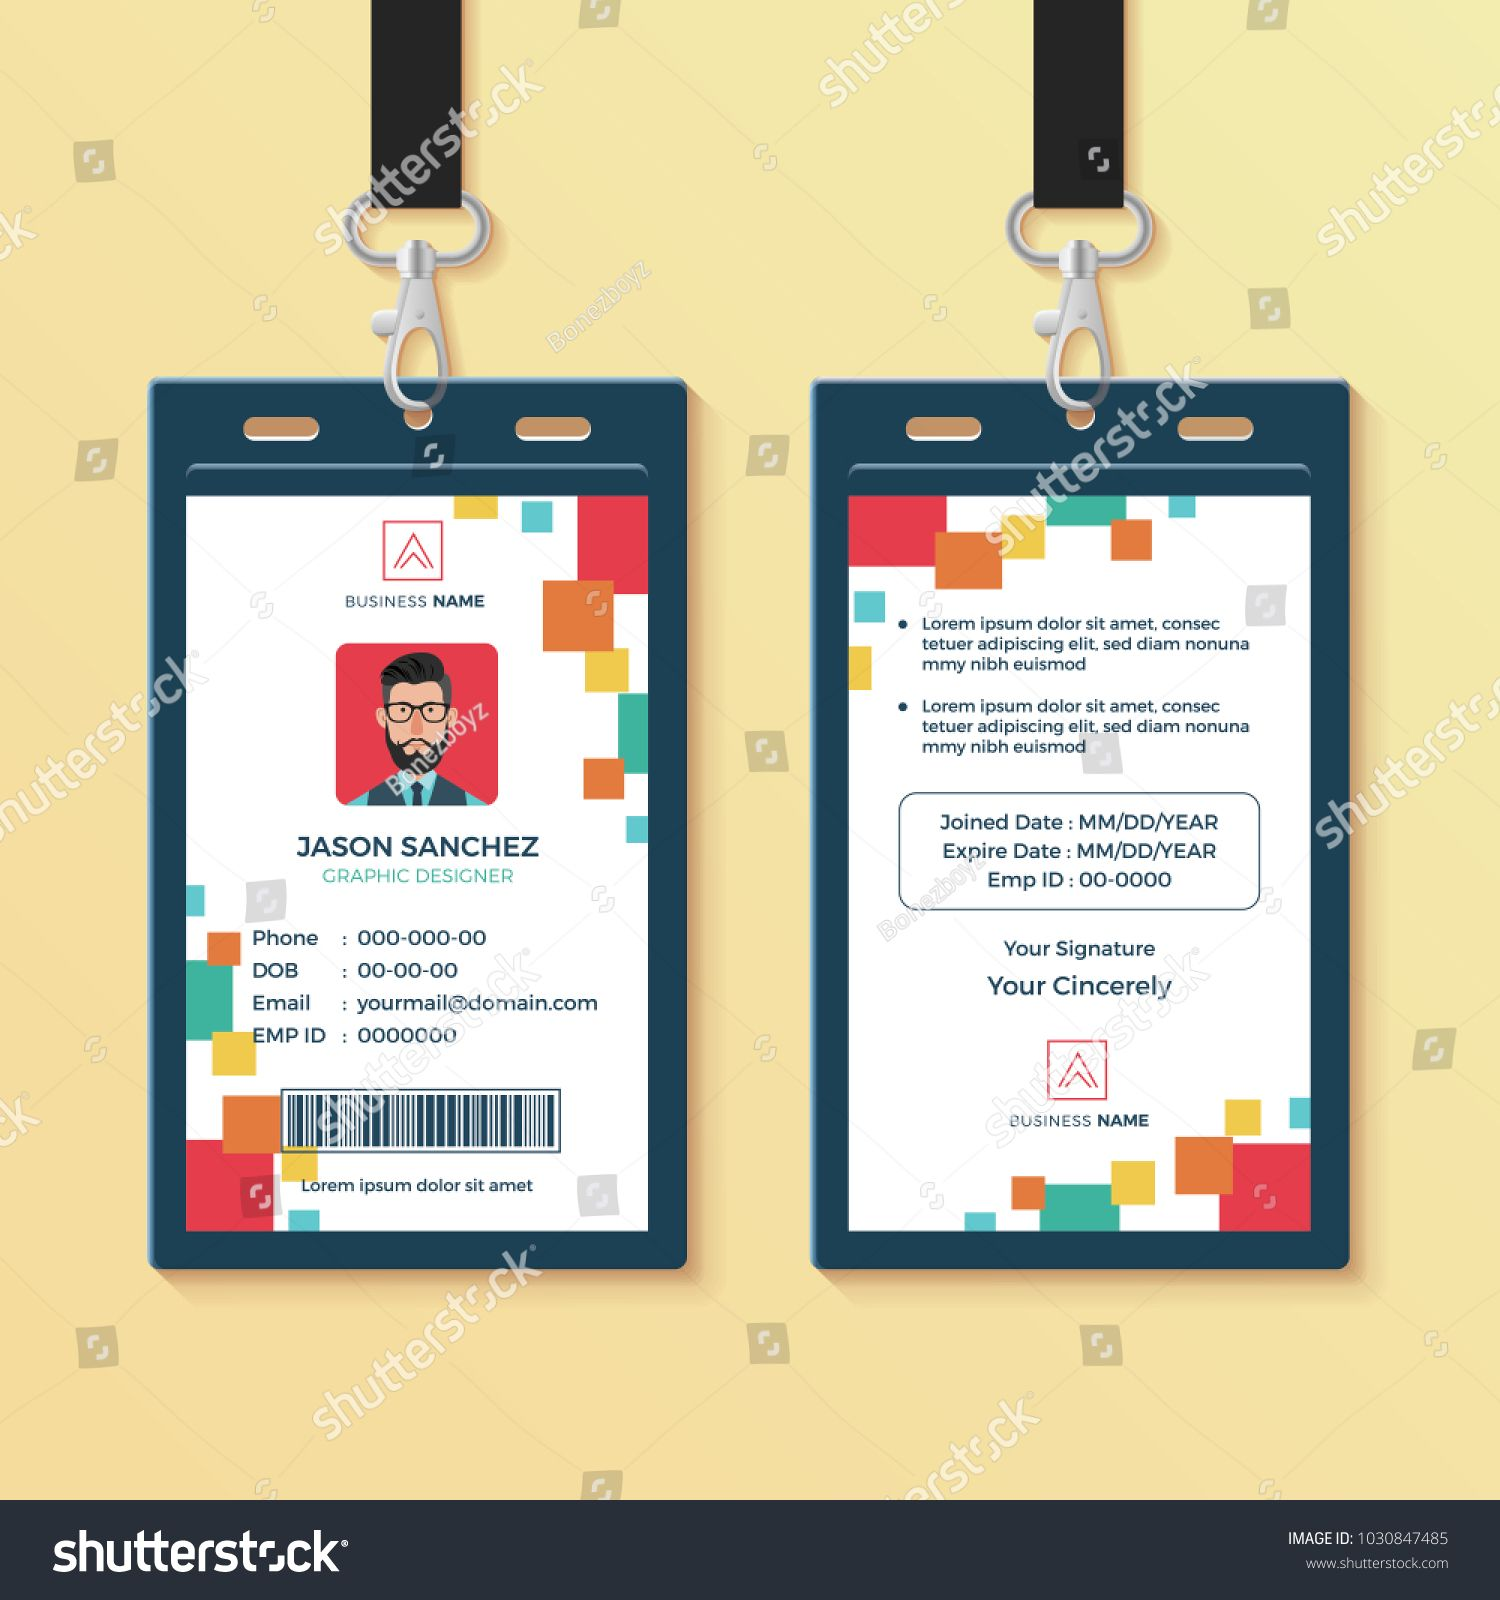 Creative Id Card Template Perfect For Any Types Of Agency Corporate Offices And Companies You Can Also Id Card Template Card Template Identity Card Design